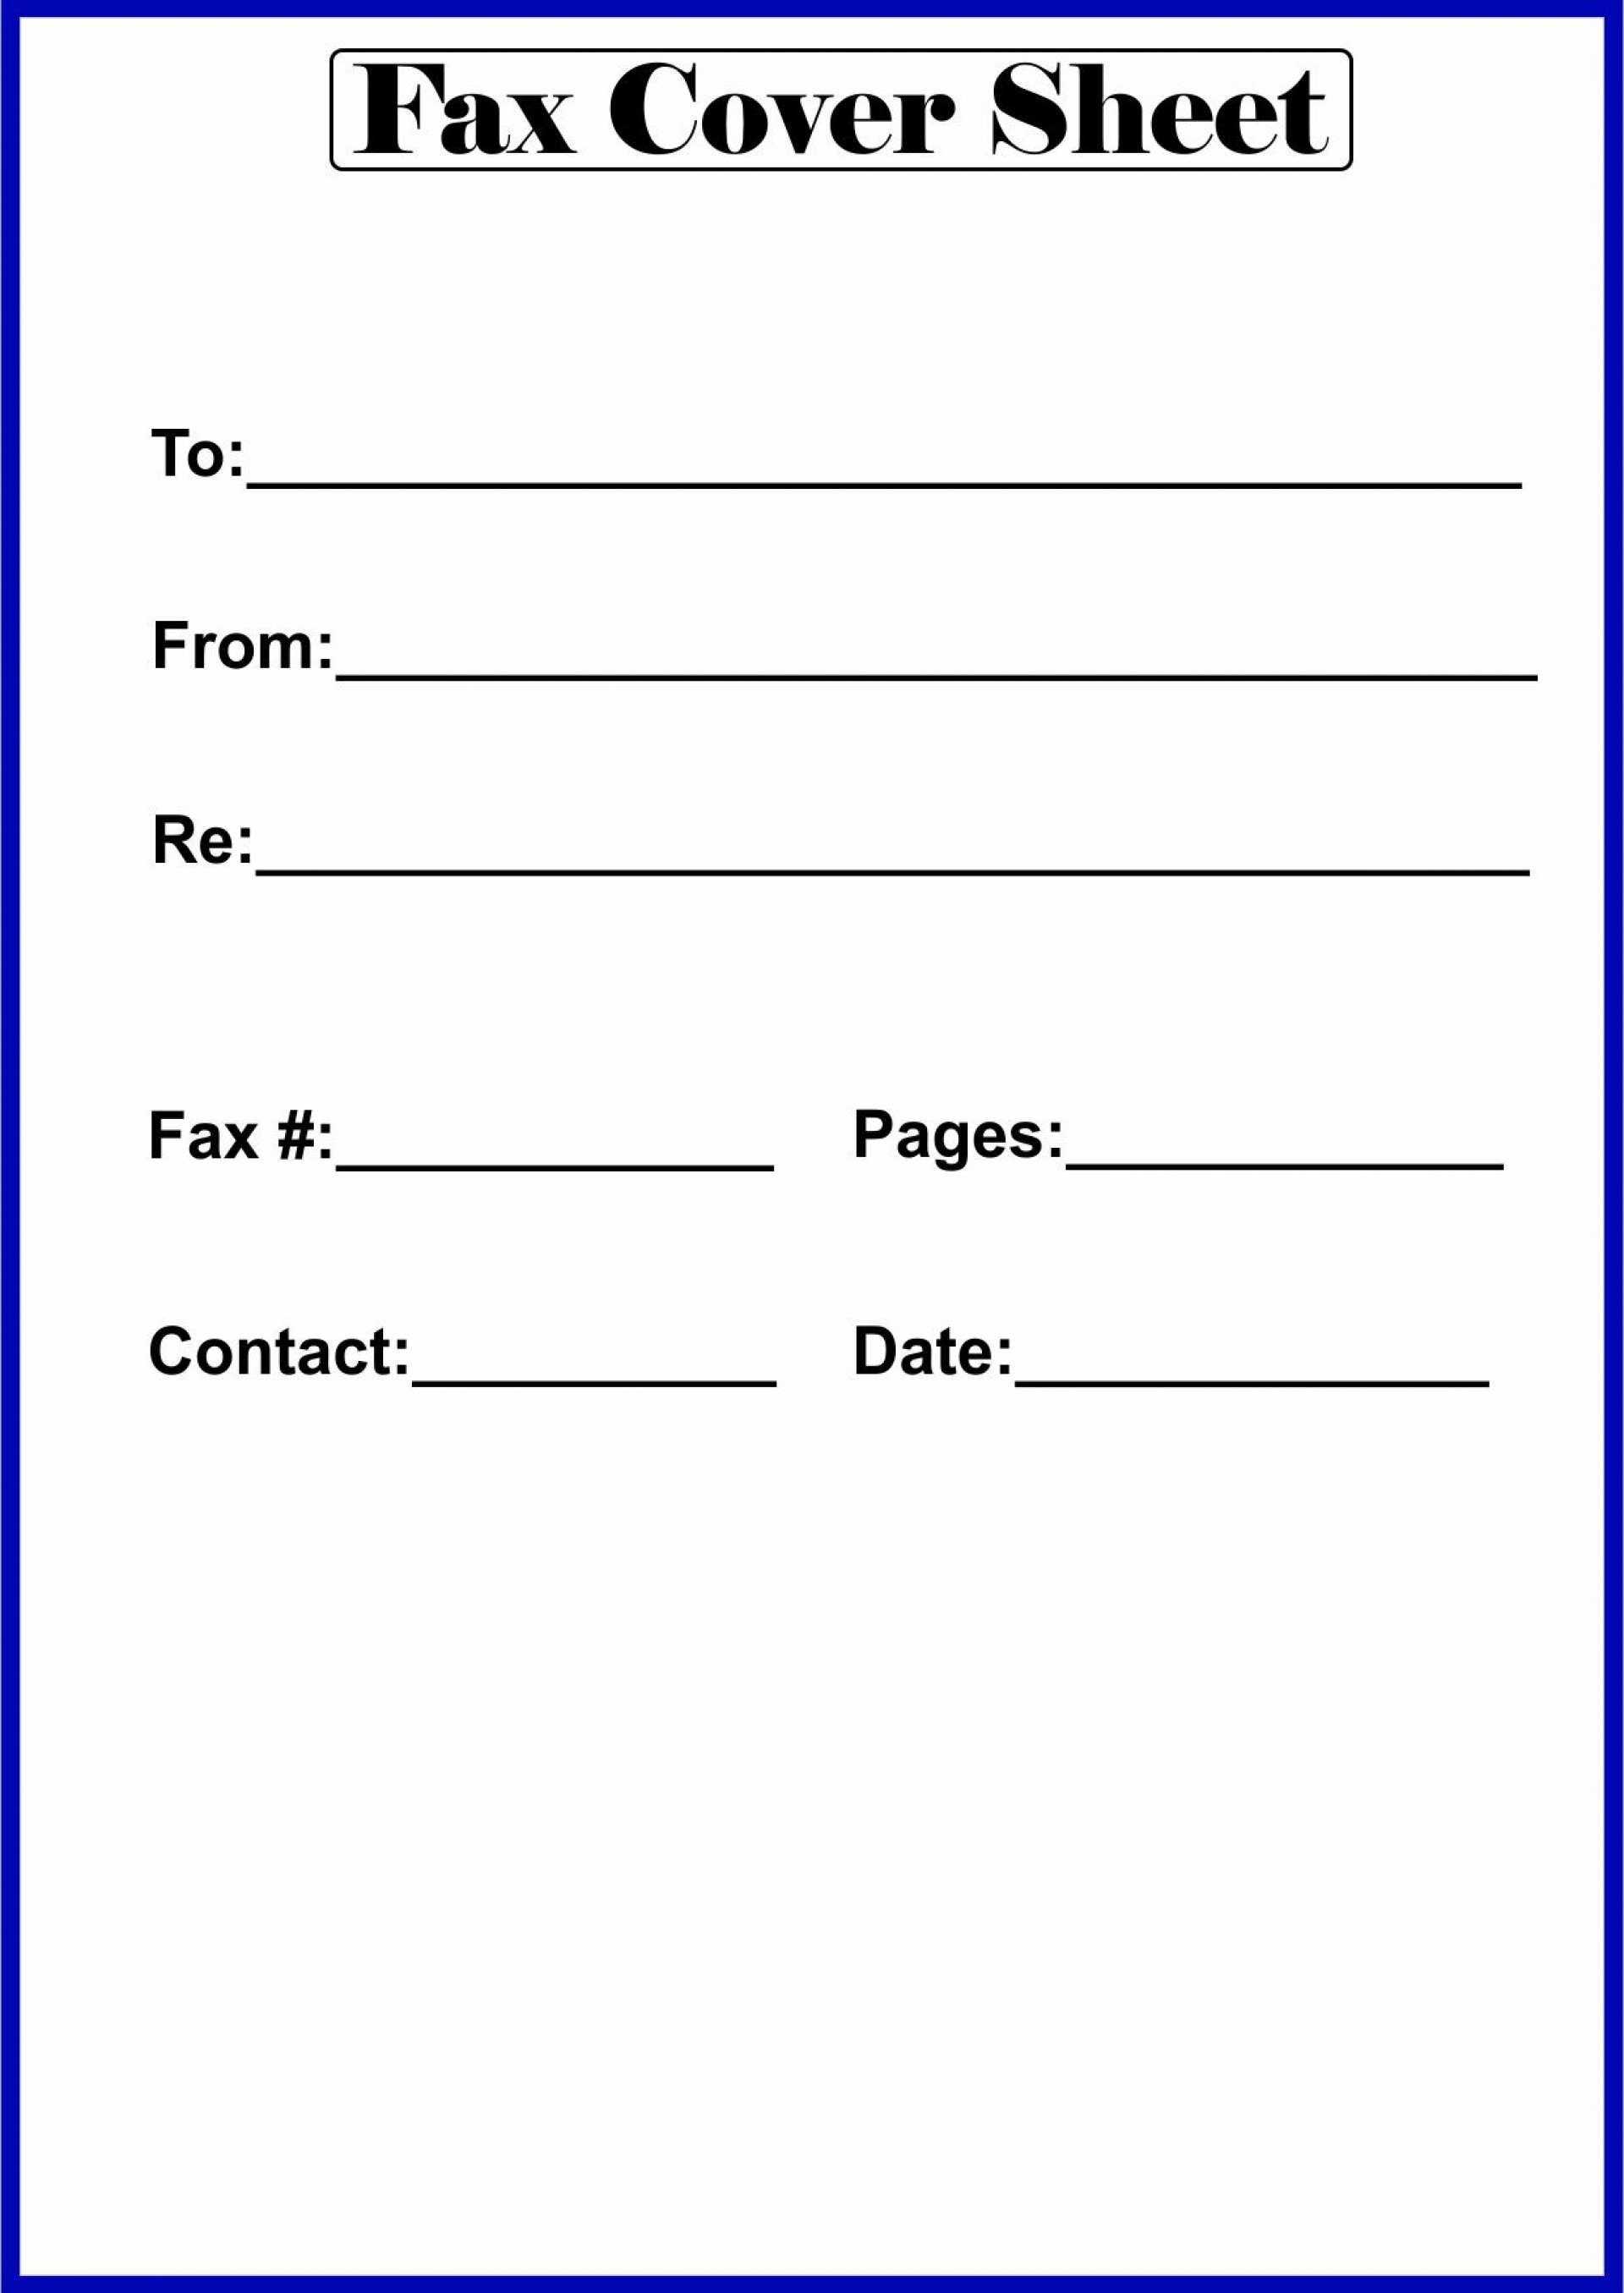 001 Rare Fax Template Microsoft Word Photo  Cover Sheet 2010 Letter Busines1920